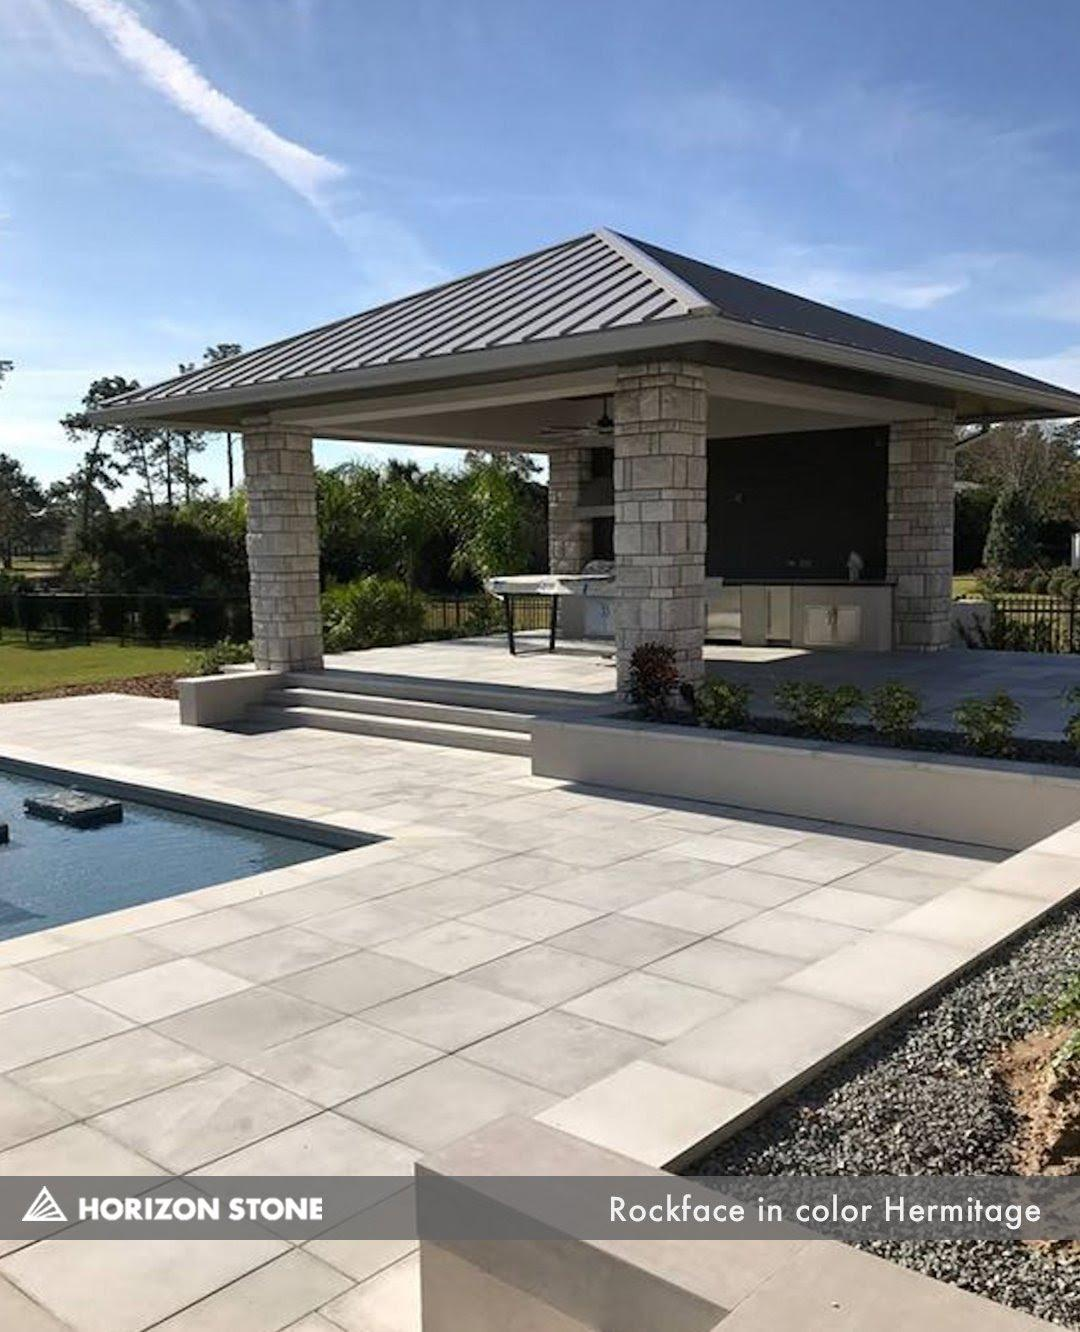 A picture containing sky, building, outdoor, deck  Description automatically generated